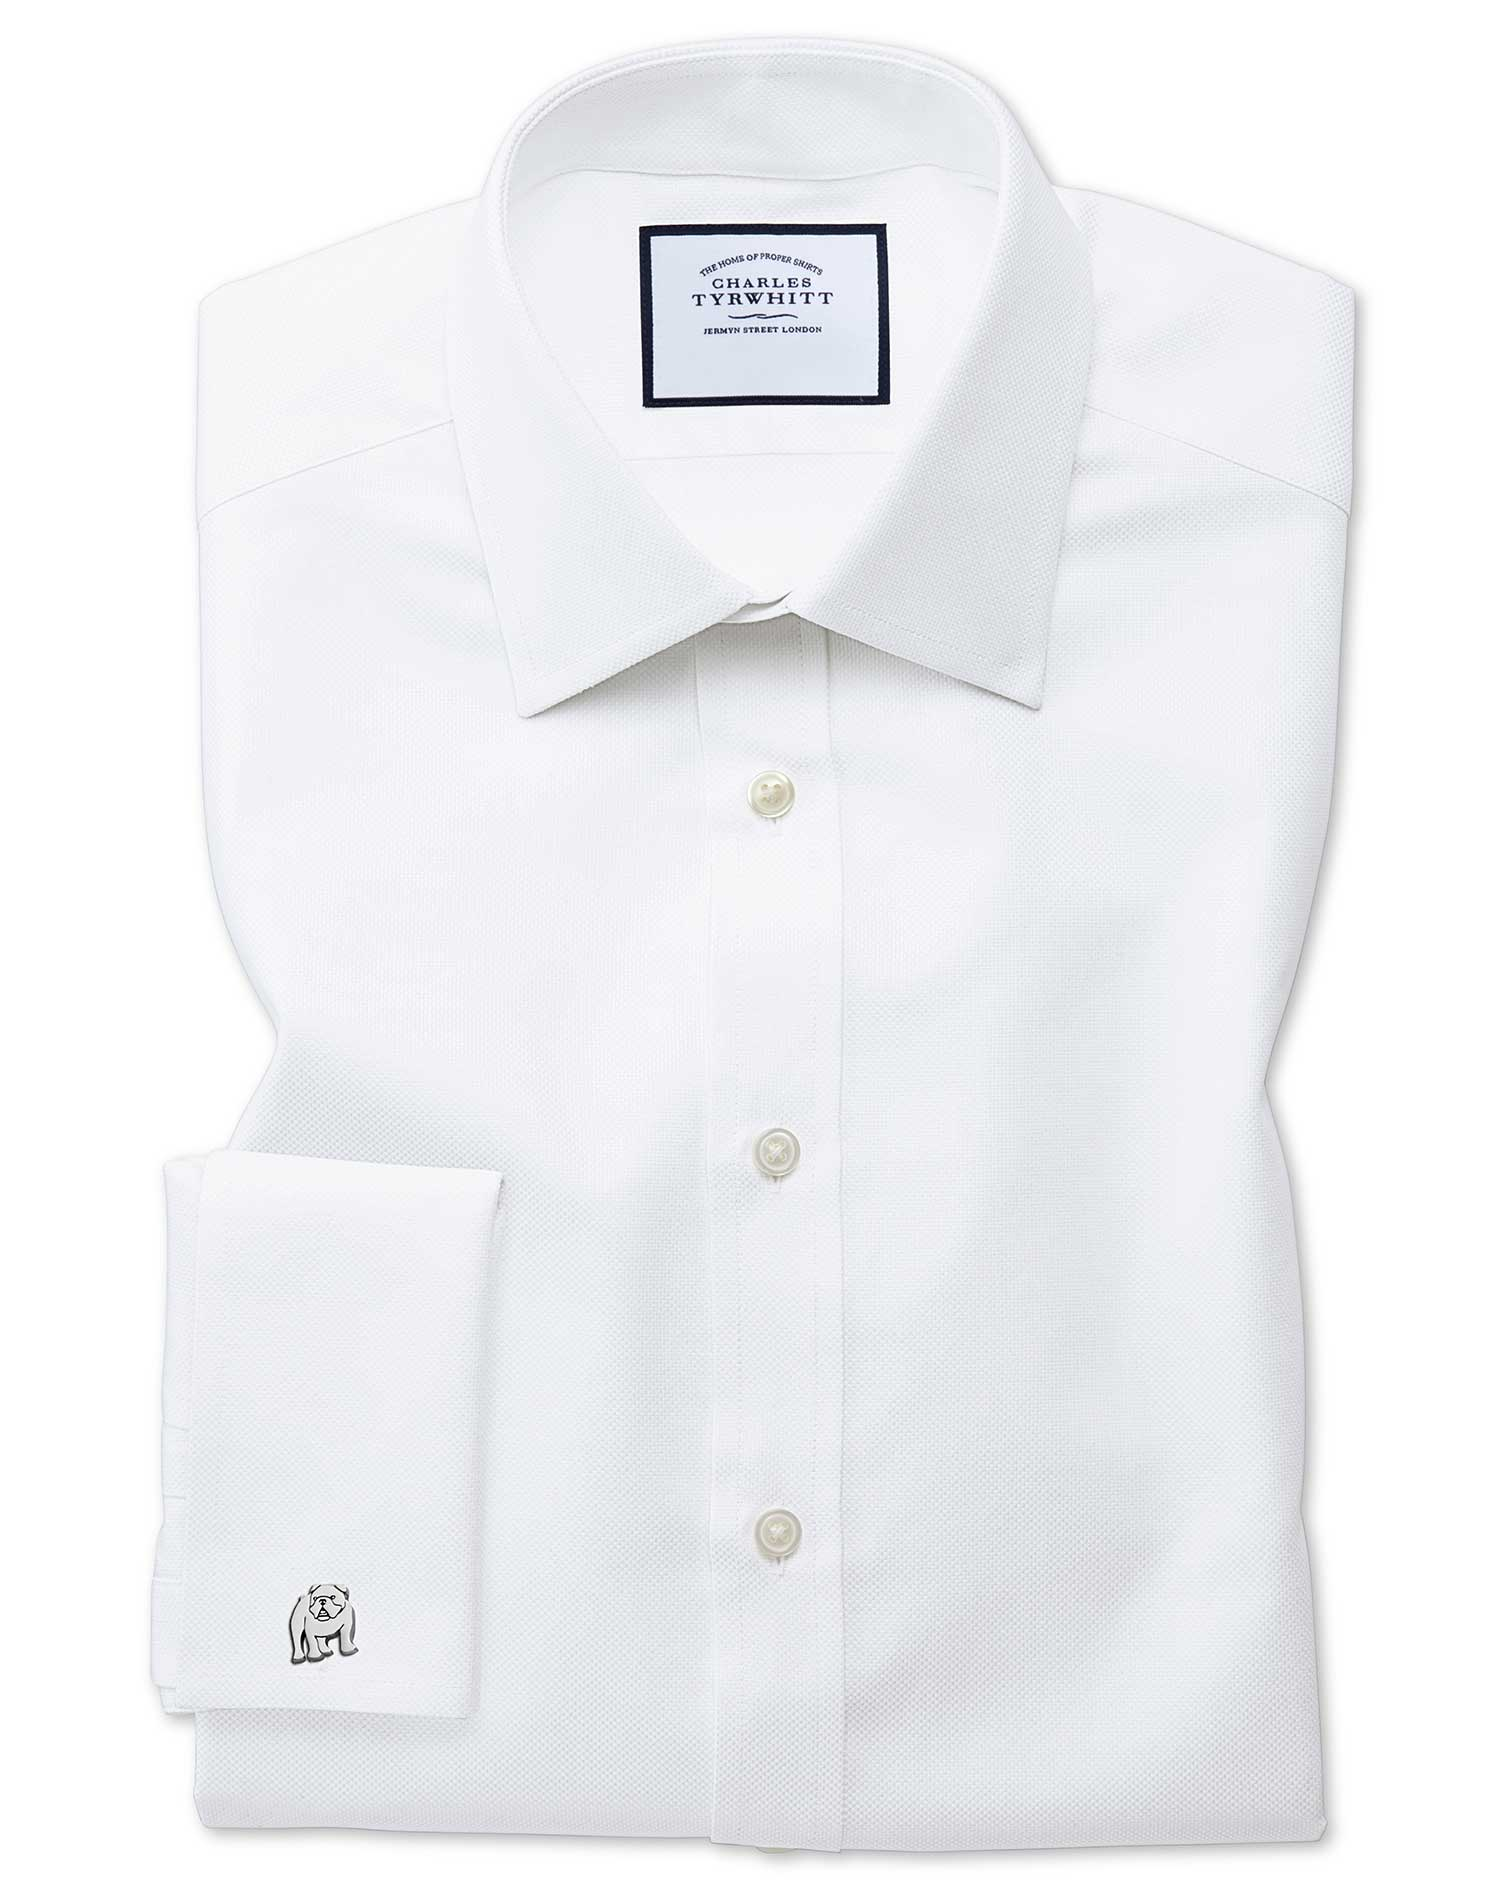 Extra Slim Fit Egyptian Cotton Royal Oxford White Formal Shirt Single Cuff Size 16.5/36 by Charles T